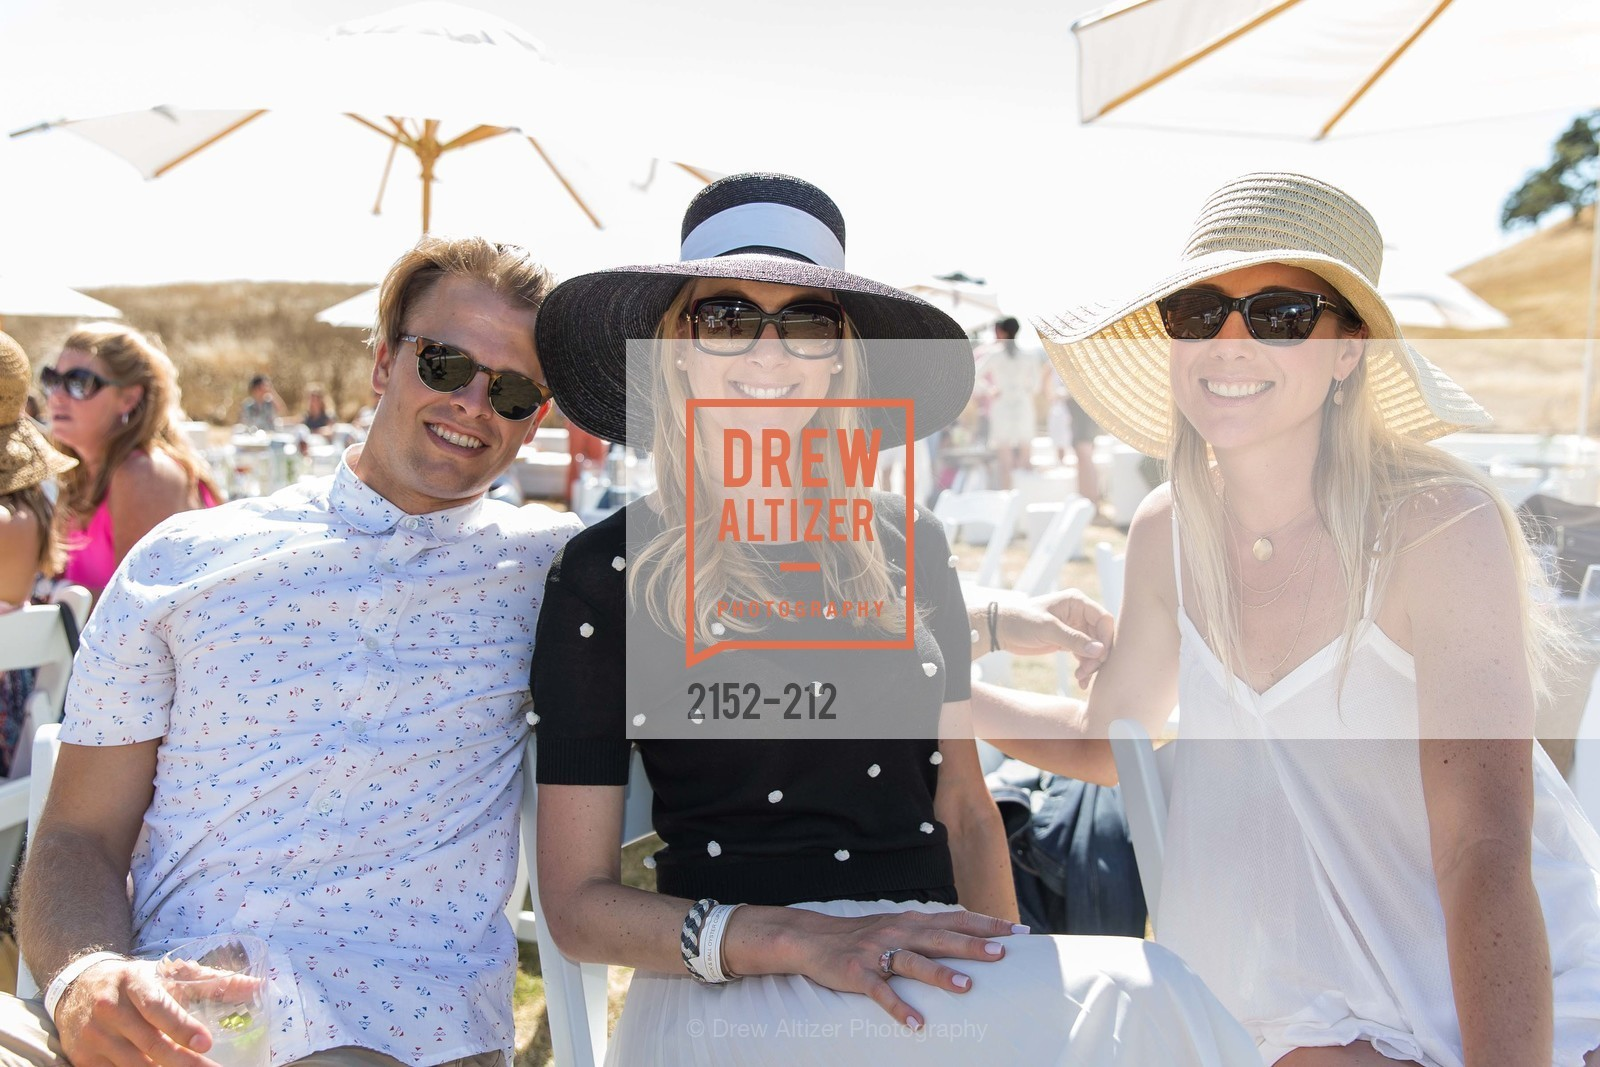 Brian Eidson, Lauren Wolfe, Samantha Hartwell, Stick & Ball Oyster Cup Polo Tournament, Cerro Pampa Polo Club, July 25th, 2015,Drew Altizer, Drew Altizer Photography, full-service agency, private events, San Francisco photographer, photographer california